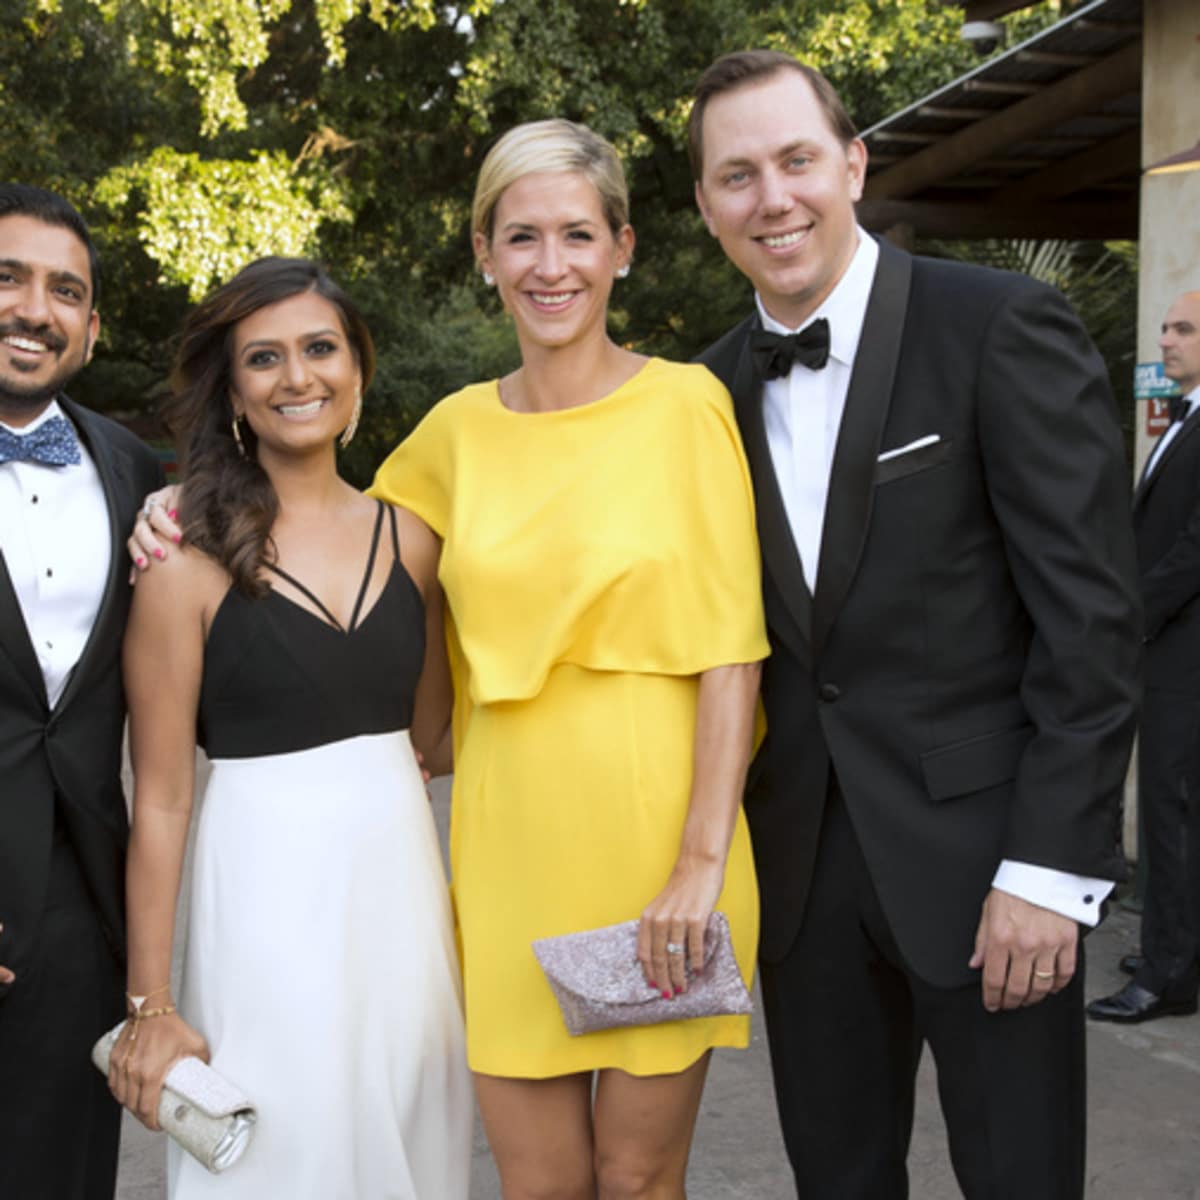 Houston, Zoo Ball Aquatic Affair, April 2017, Vik Agrawal, Chrisha Agrawal, Courtney Solleveld, Bas Solleveld